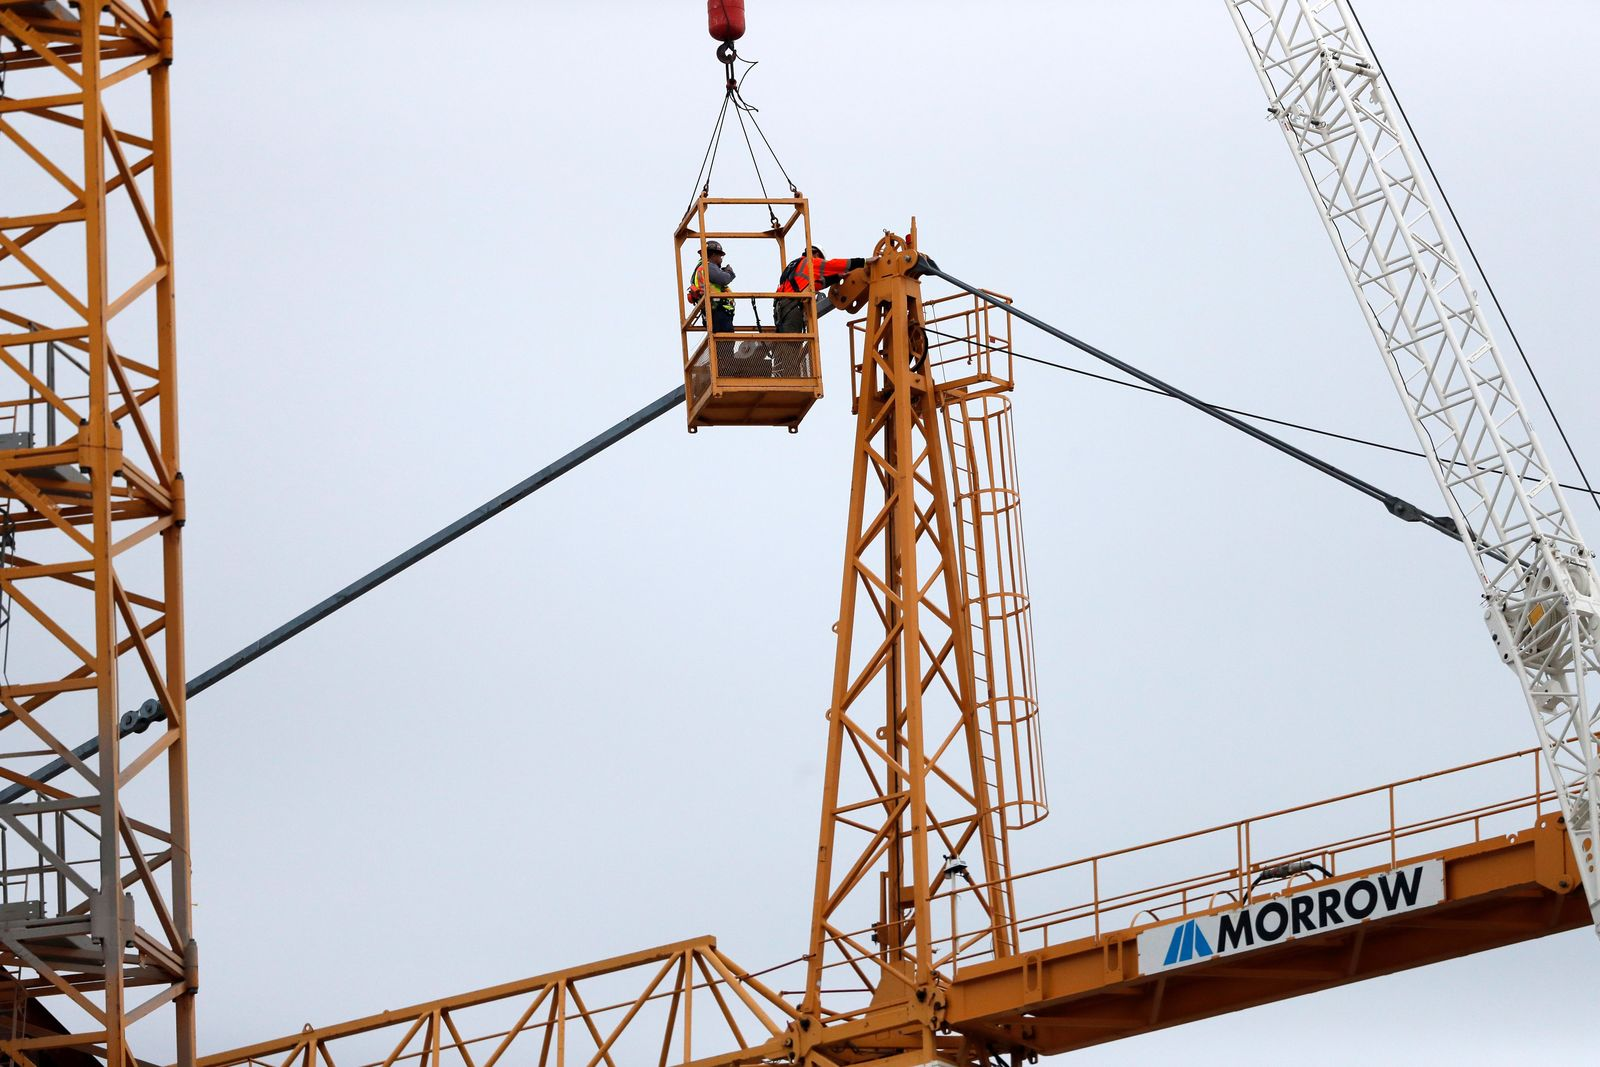 Workers in a bucket hoisted by a crane begin the process of preparing the two unstable cranes for implosion at the collapse site of the Hard Rock Hotel, which underwent a partial, major collapse while under construction last Sat., Oct., 12, in New Orleans, Friday, Oct. 18, 2019. (AP Photo/Gerald Herbert)